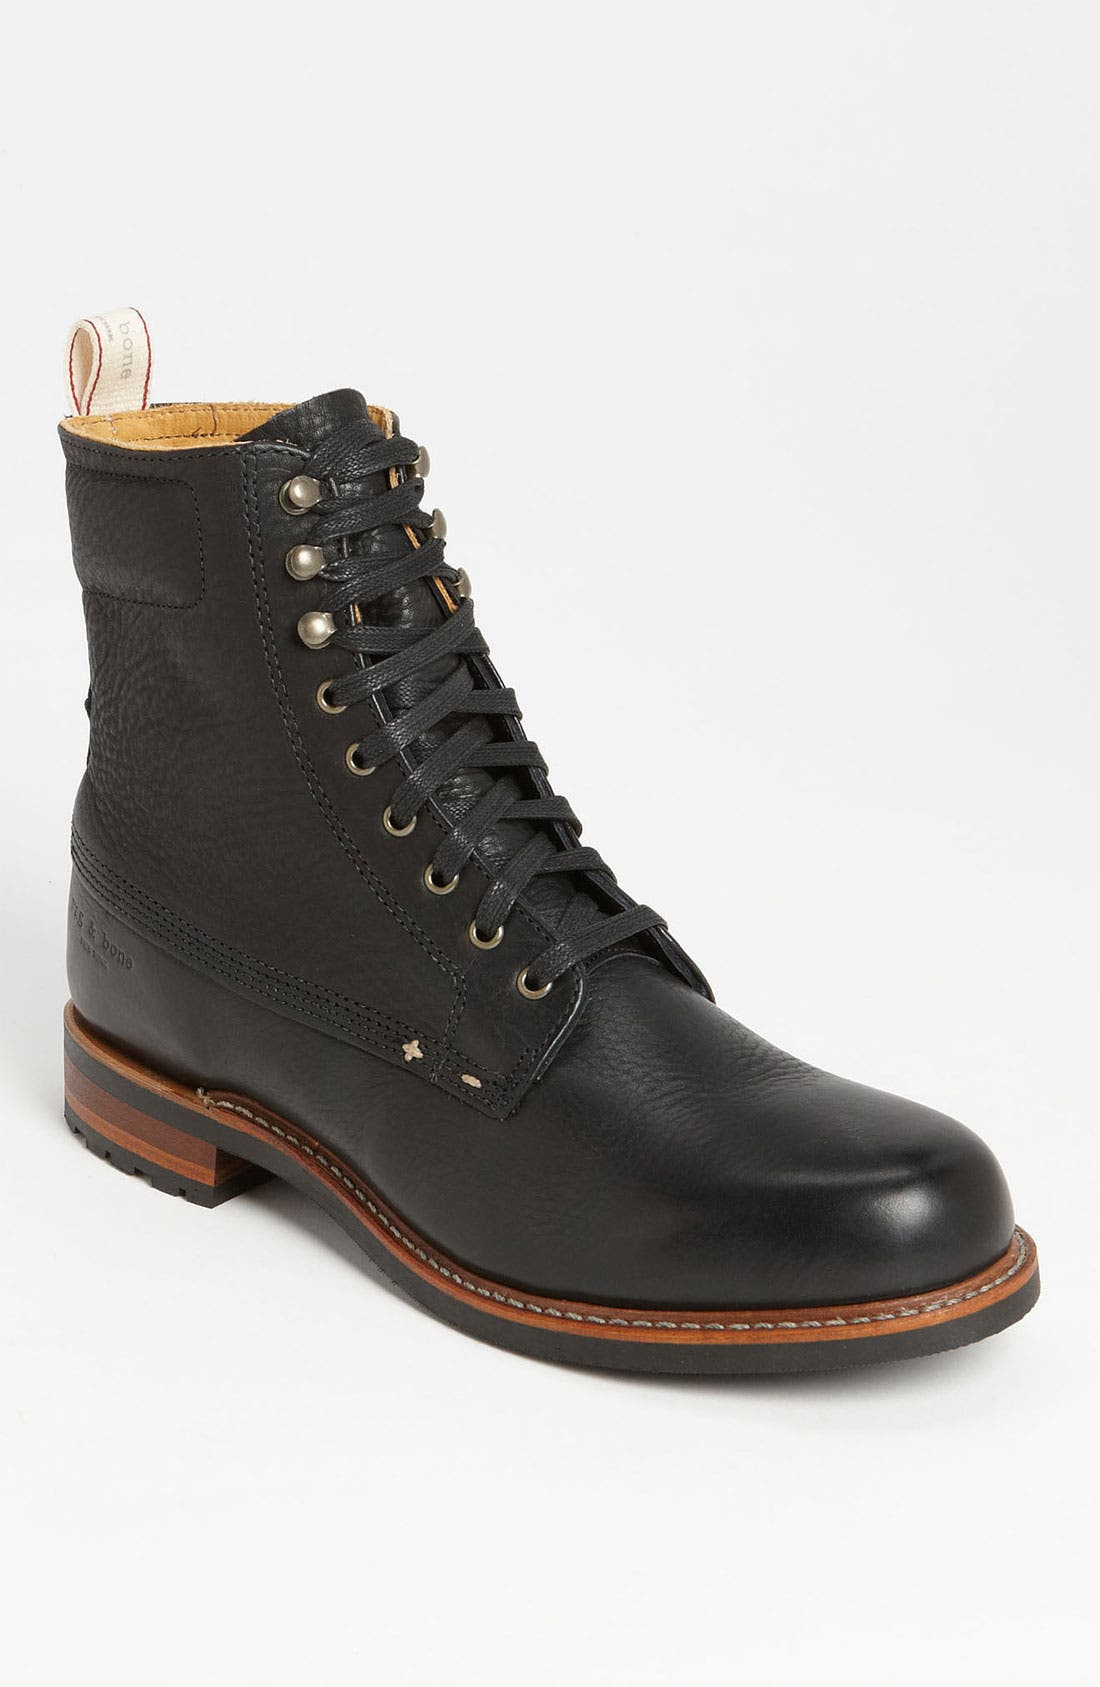 Alternate Image 1 Selected - rag & bone 'Officer' Boot